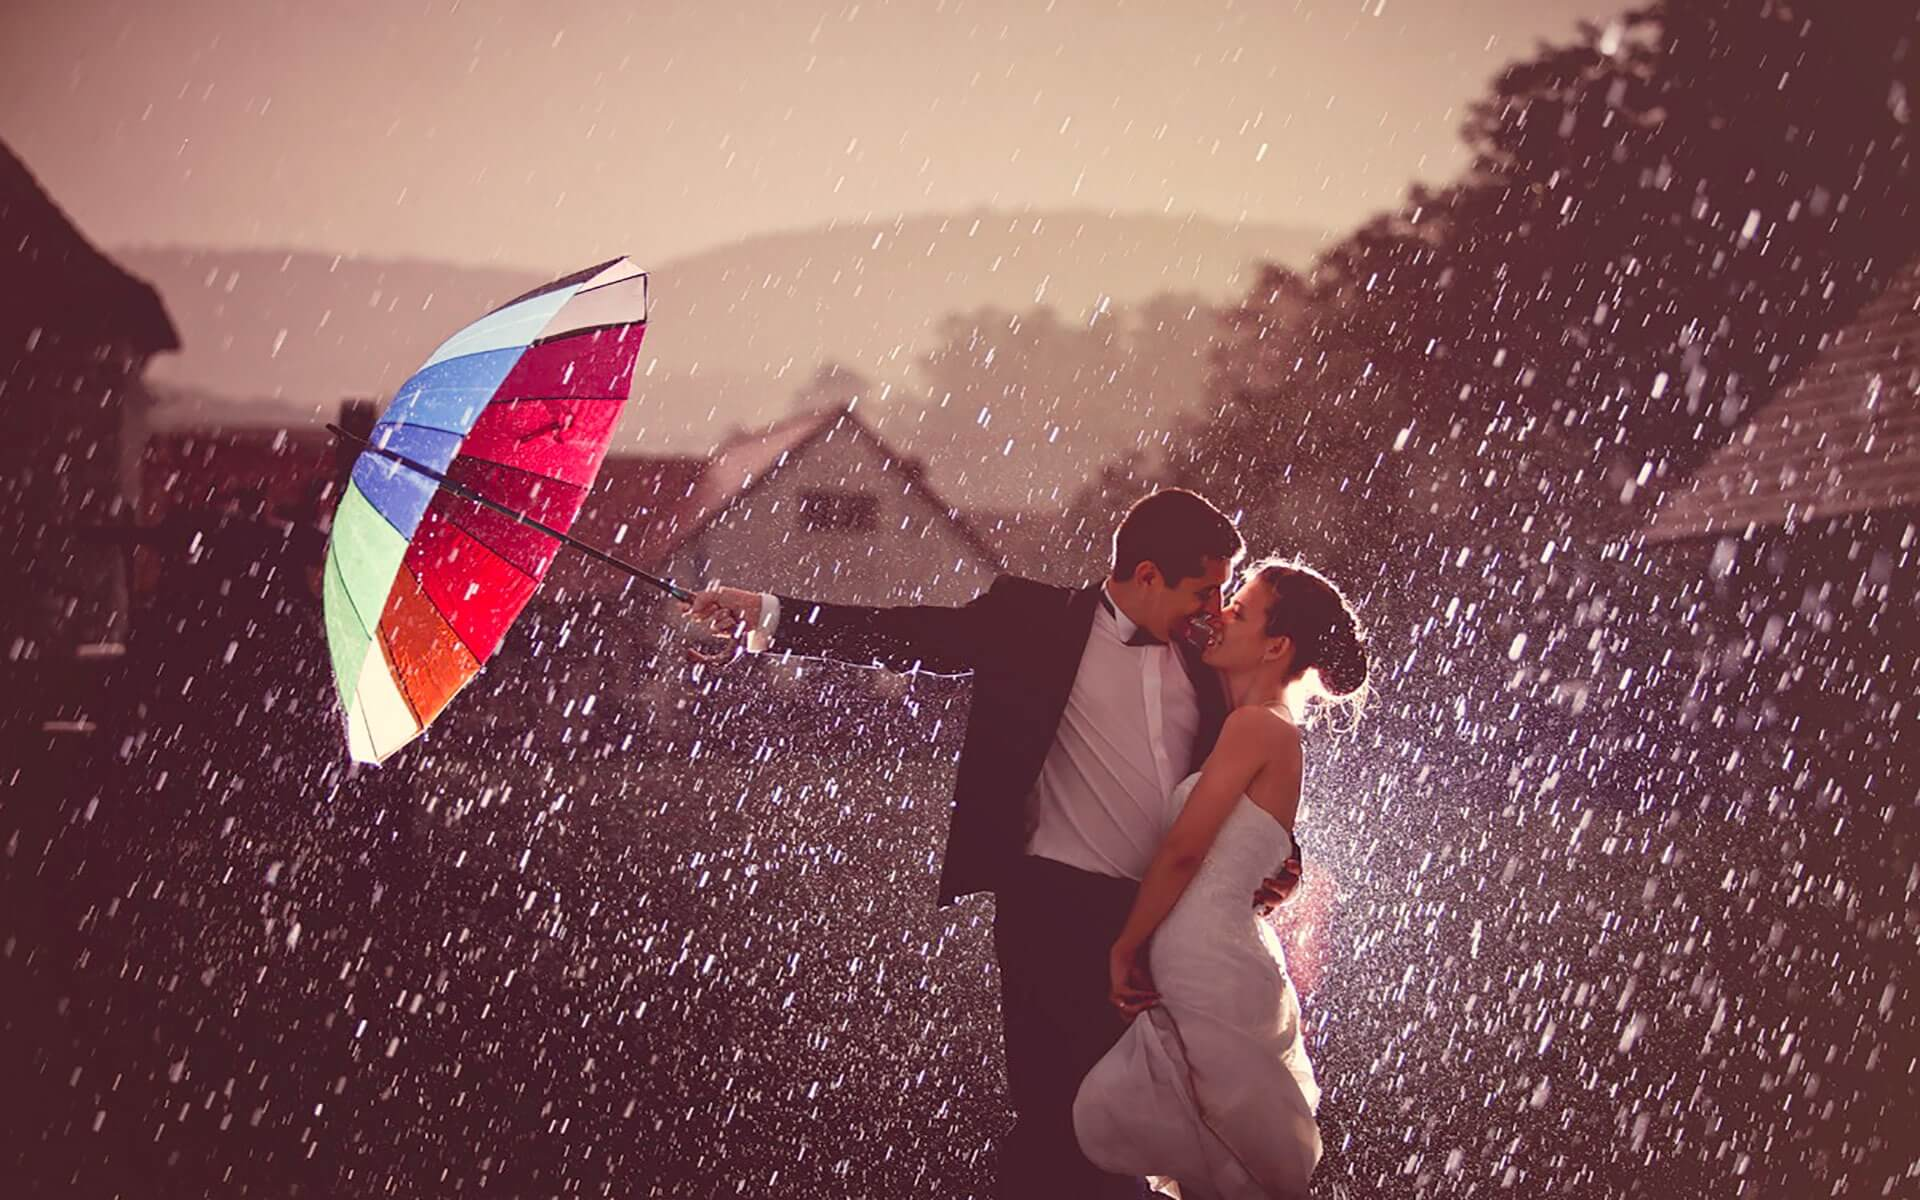 Love Rain Wallpaper Hd : cute HD Love and Romance Pictures Of couples In Rain EntertainmentMesh